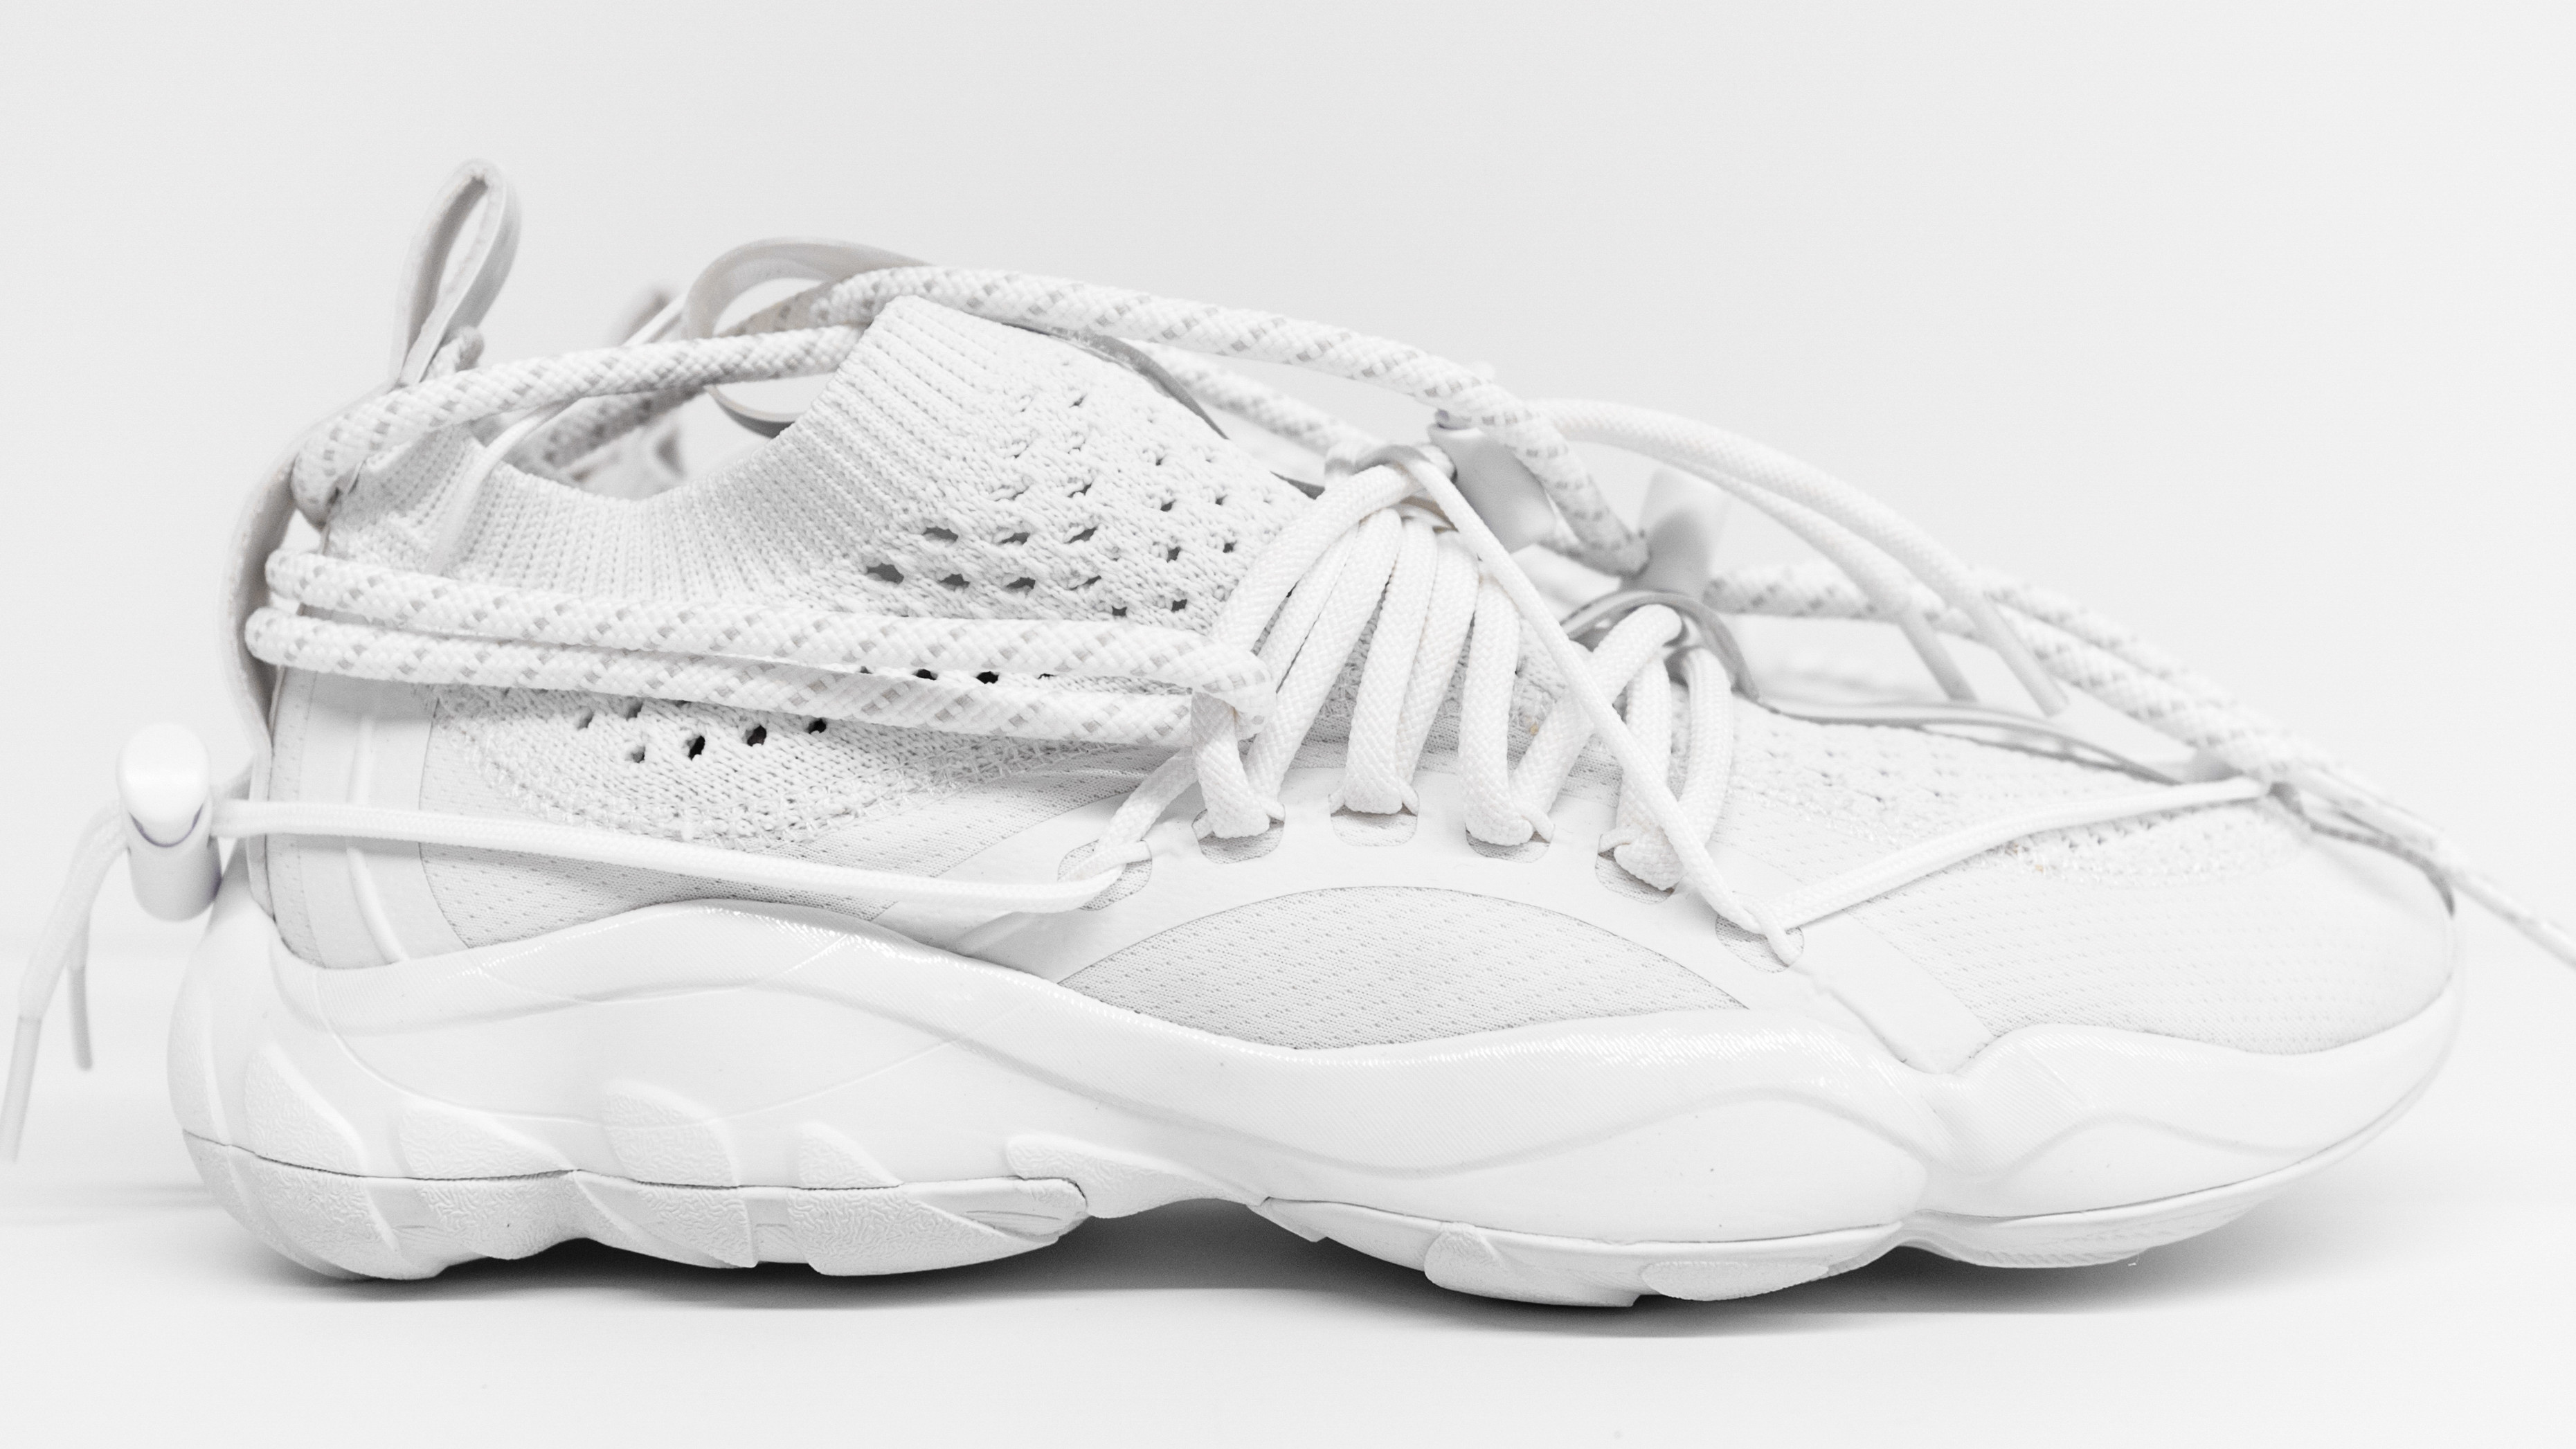 5b4051ad592bcf Reebok DMX Fusion Experiment by Pyer Moss Release Date